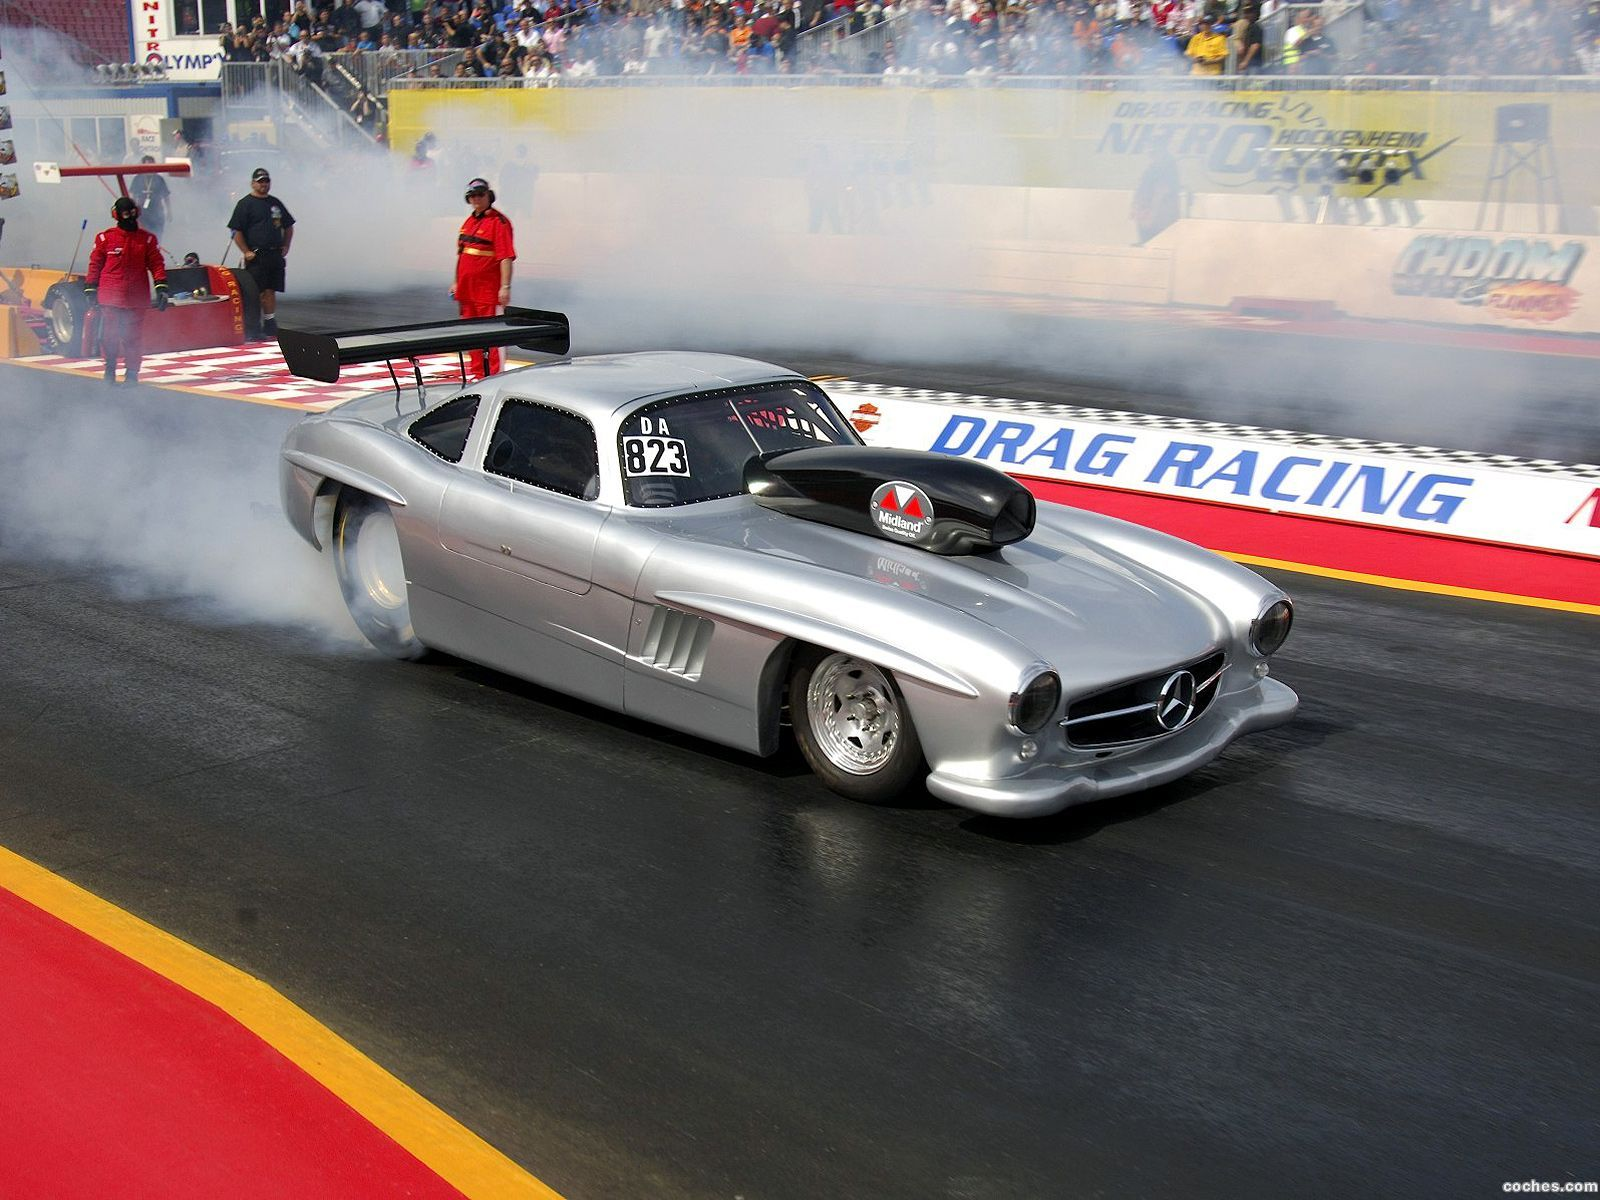 mercedes_gullwing-dragster_r7.jpg